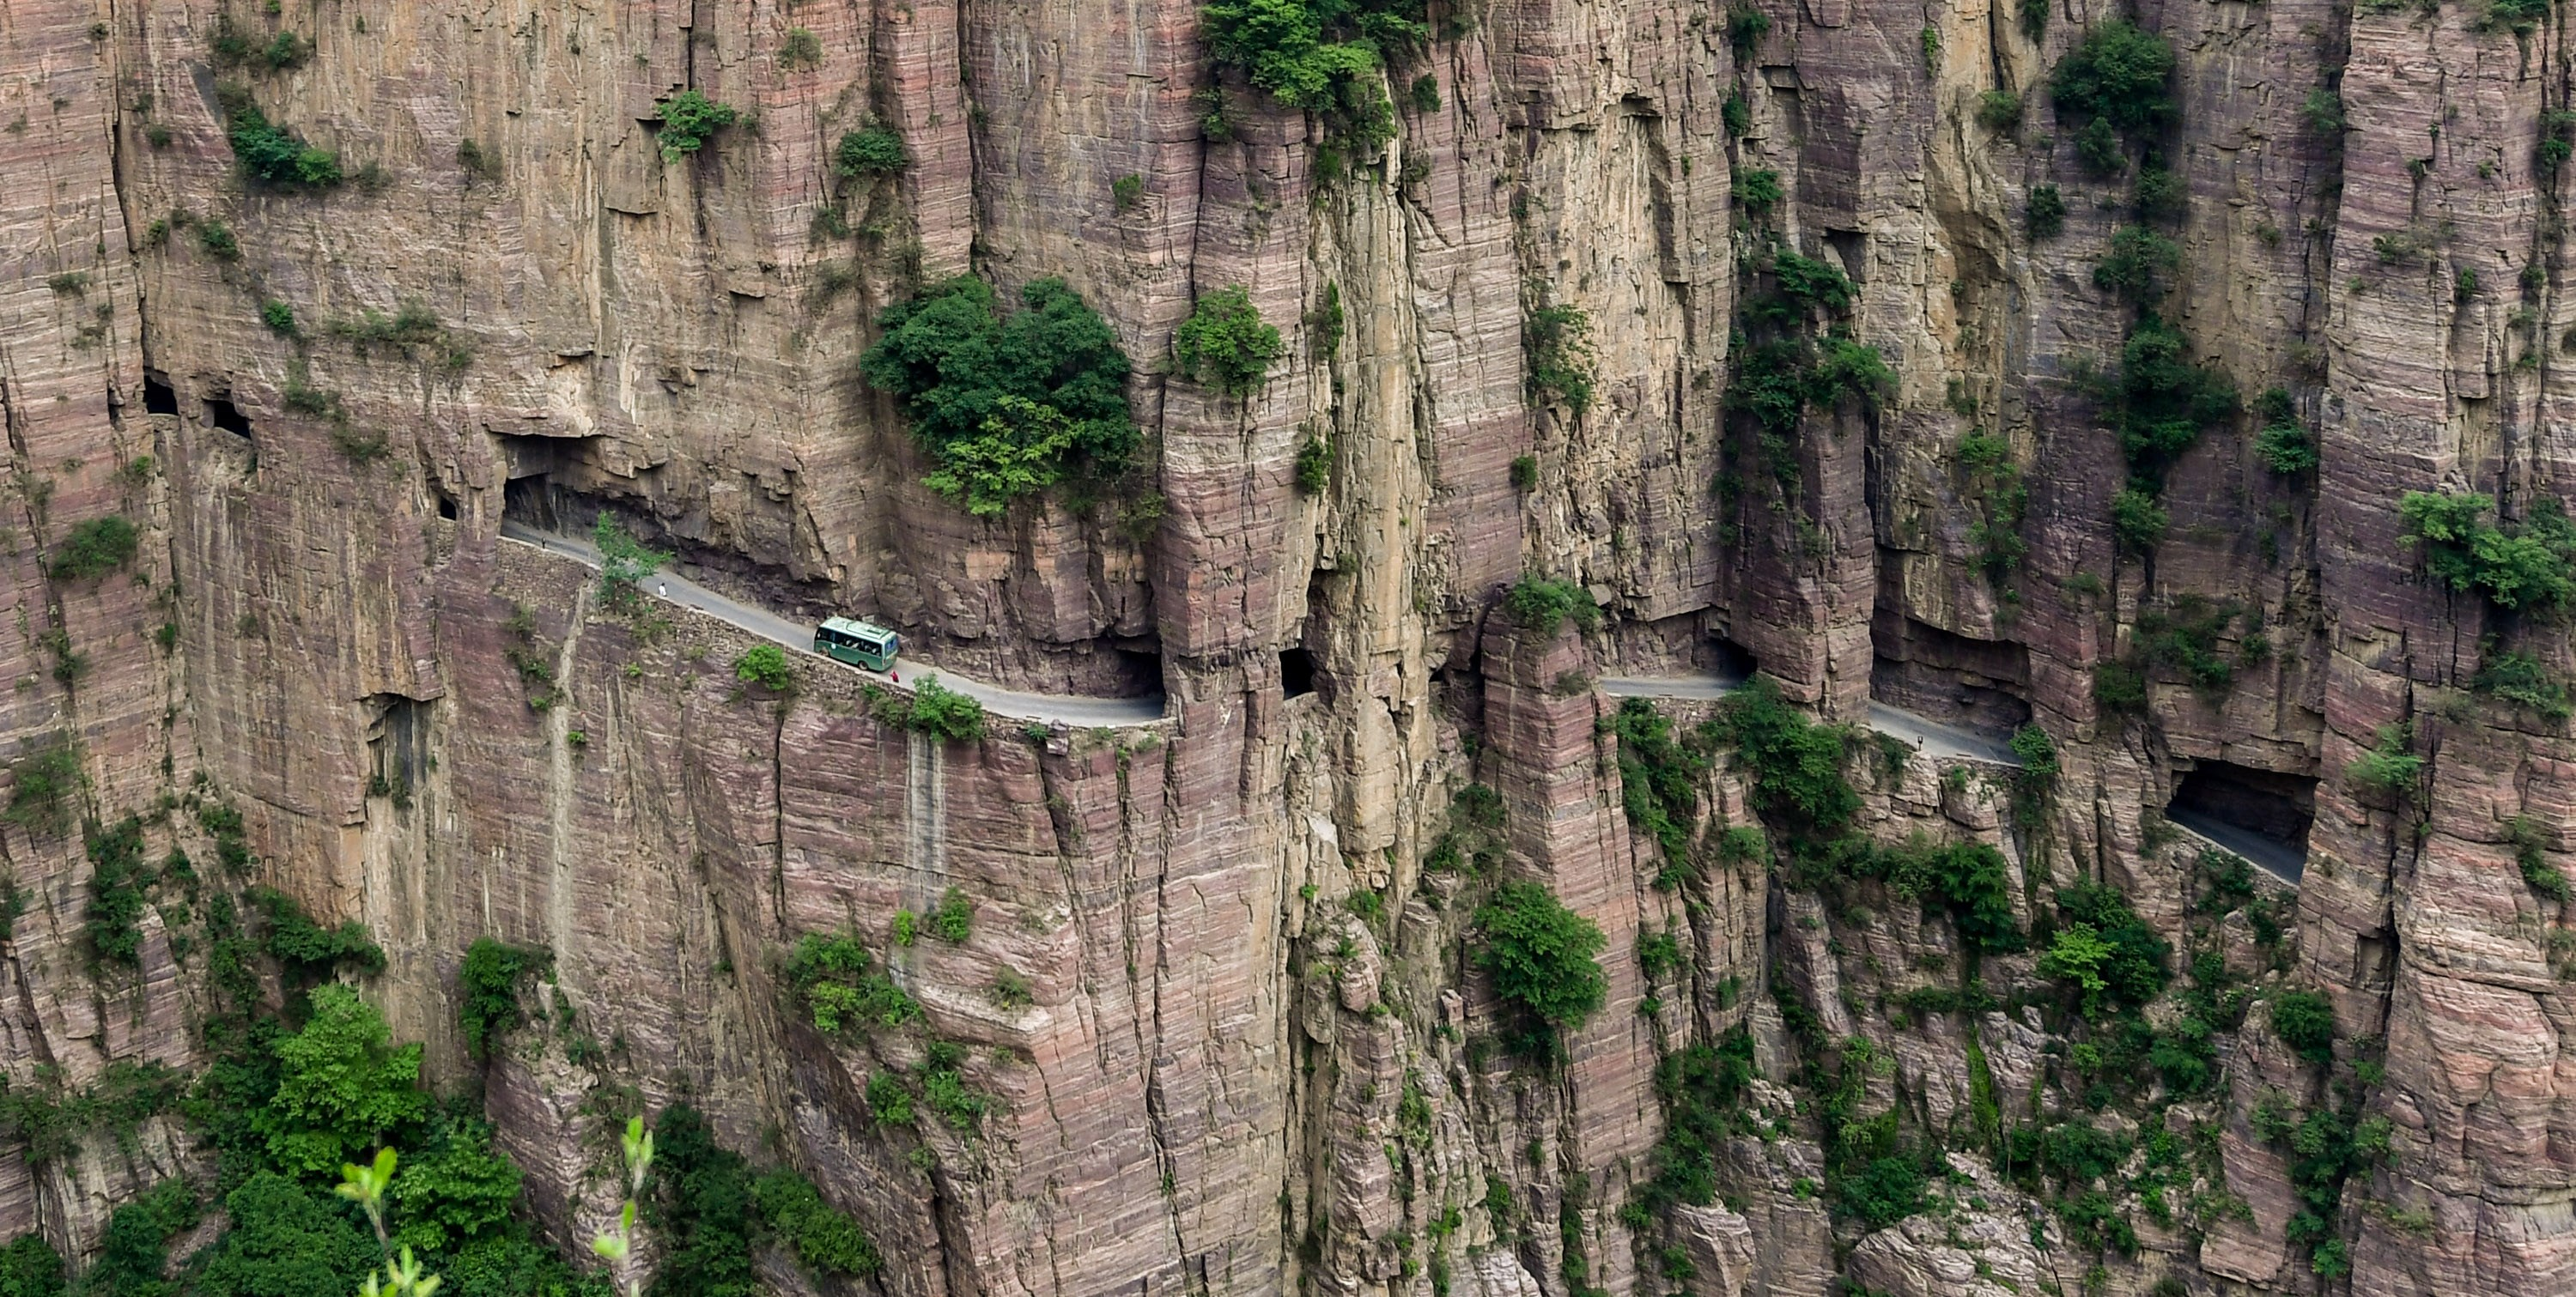 A sightseeing bus travels through the tunnel that connects Guoliang Village in Henan Province to the outside world.